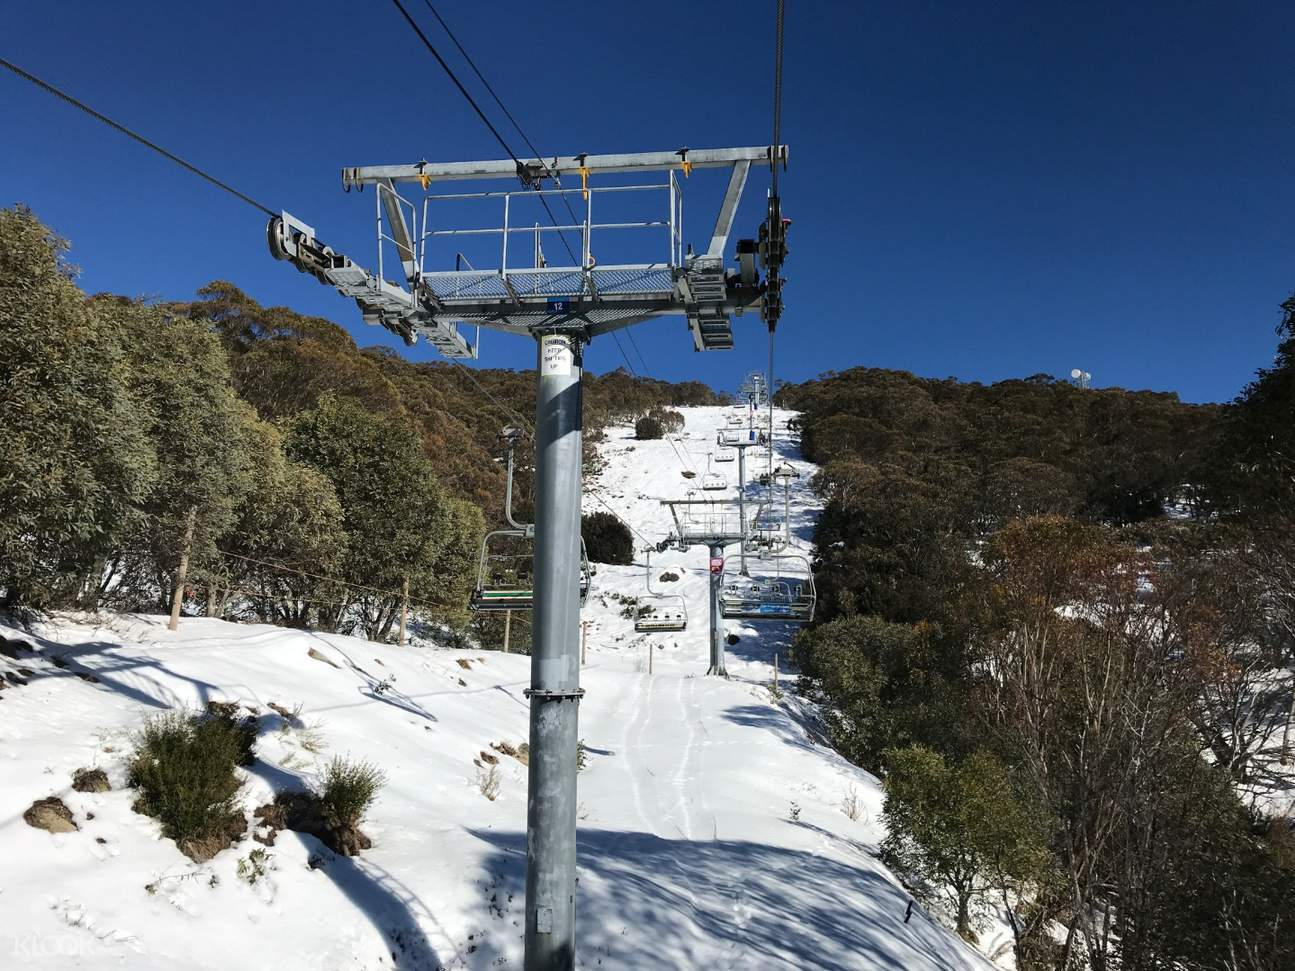 mount buller north express chairlift